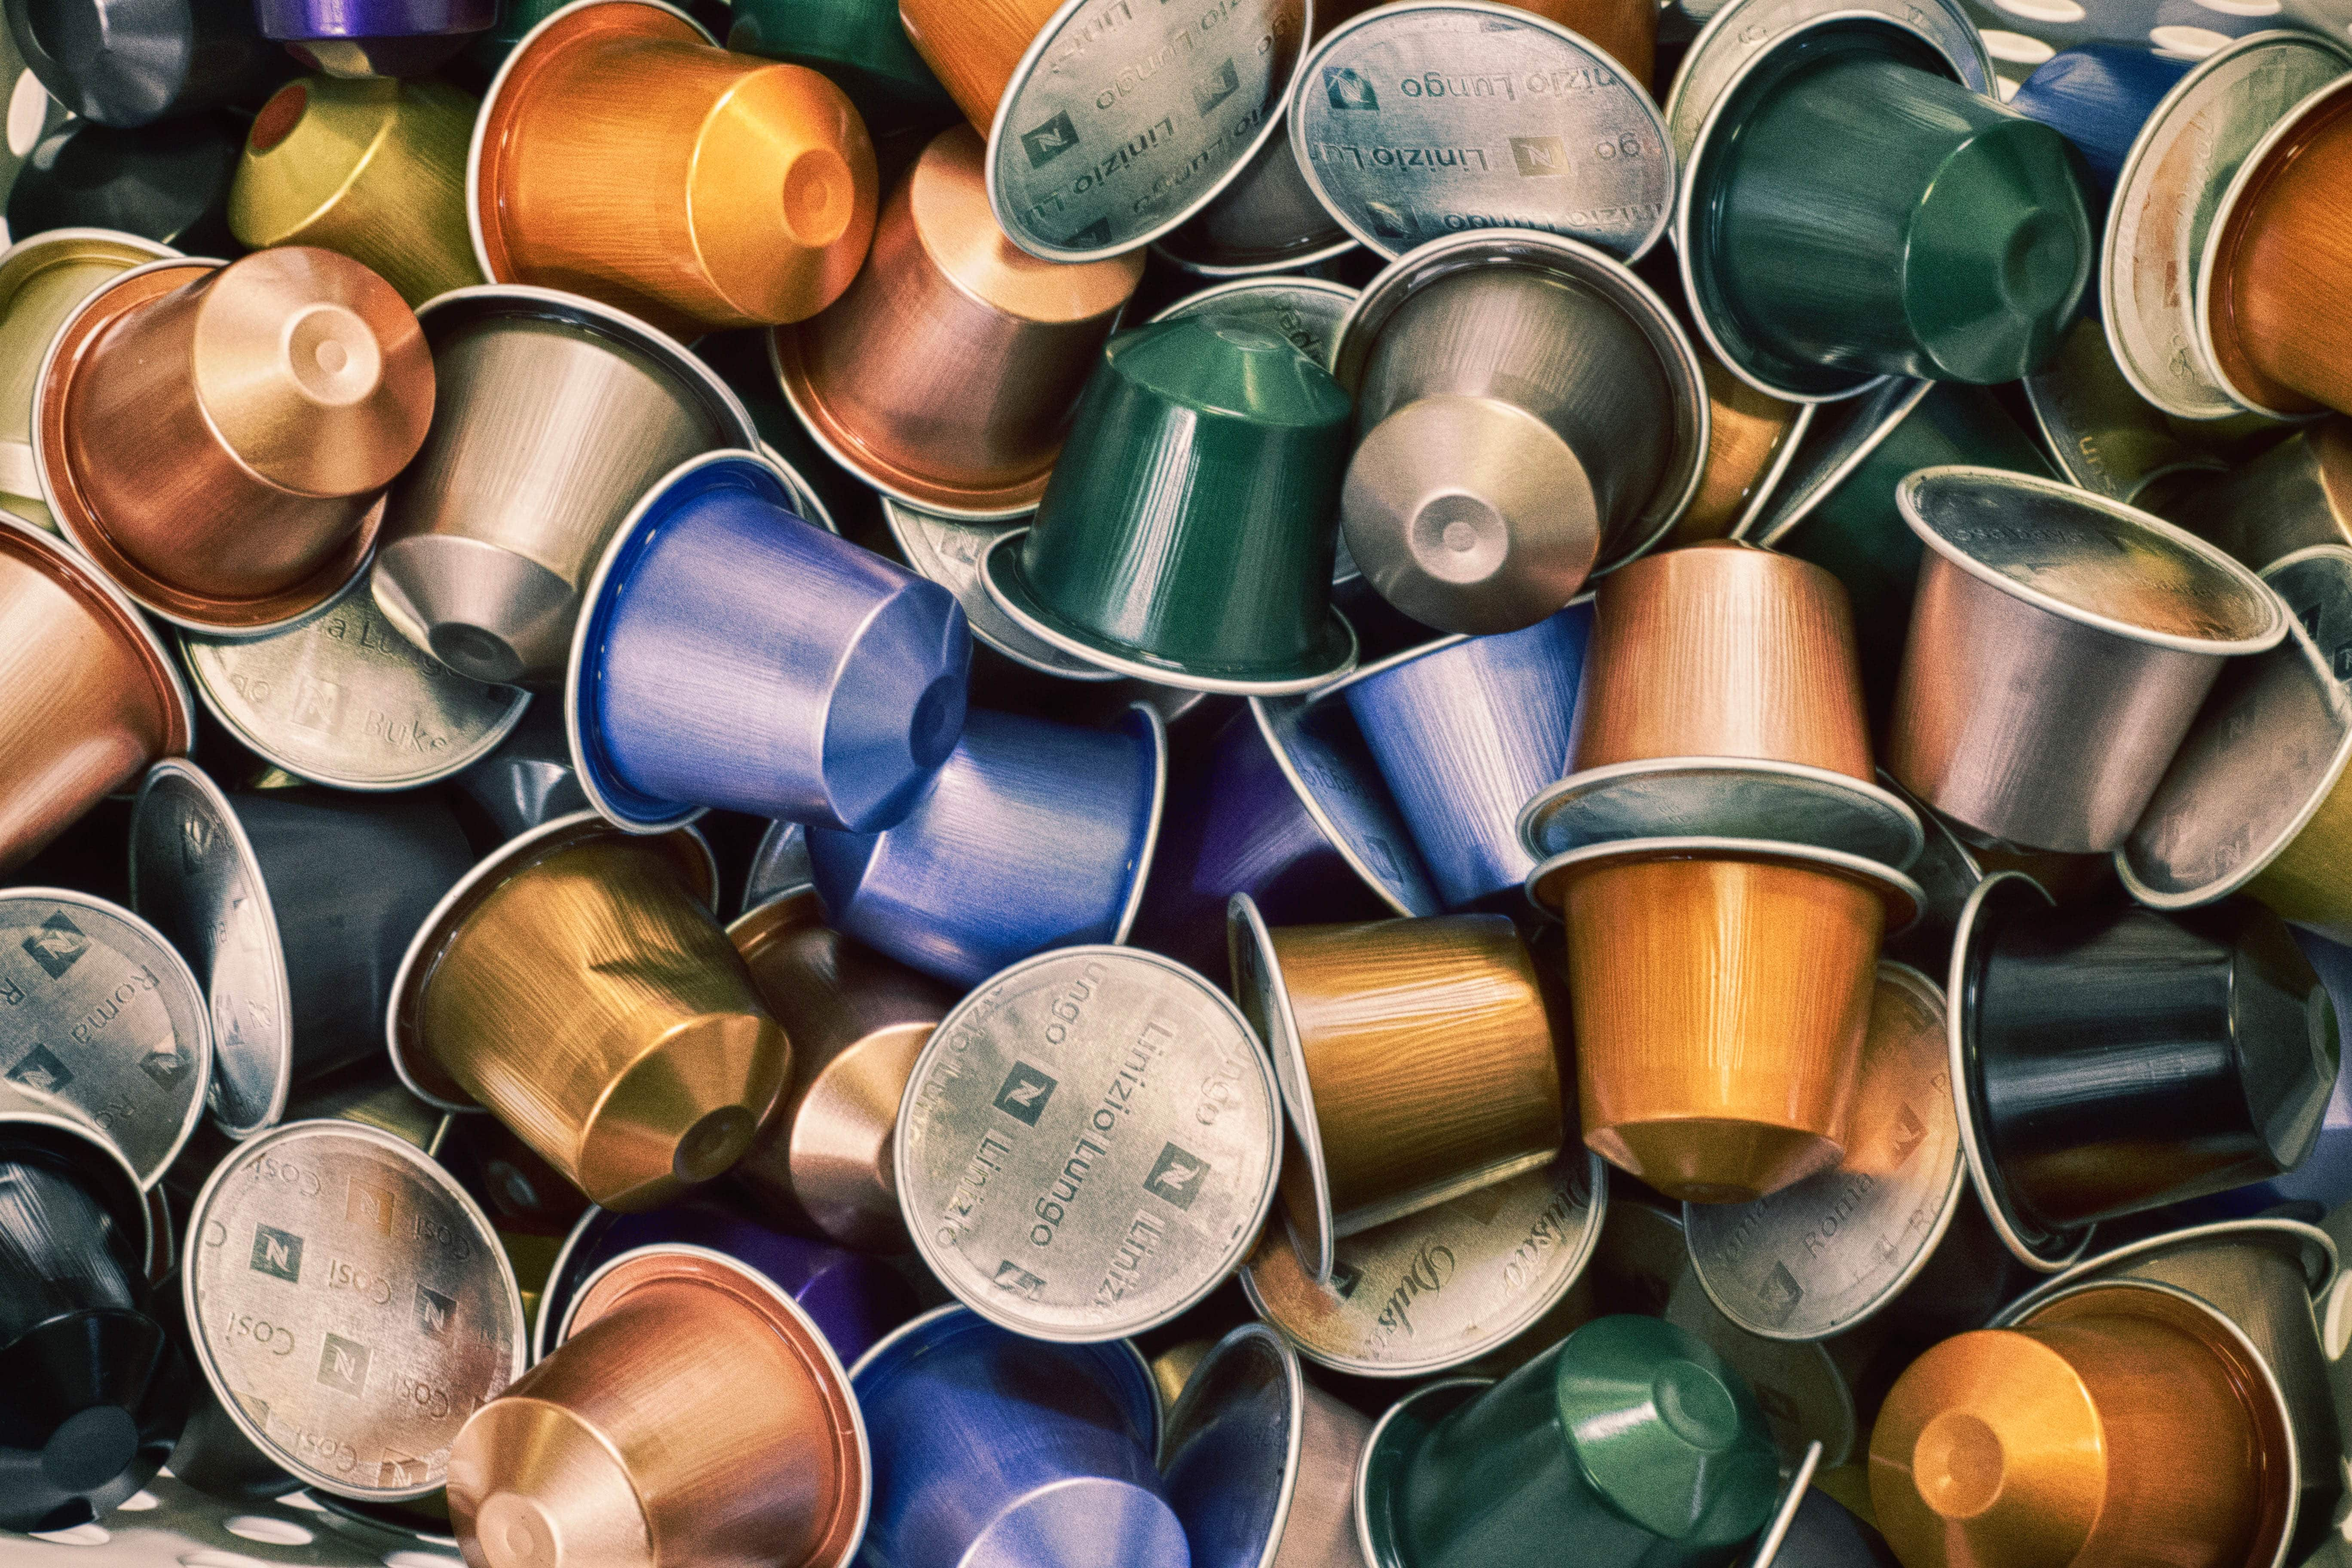 No green office should be using coffee pods